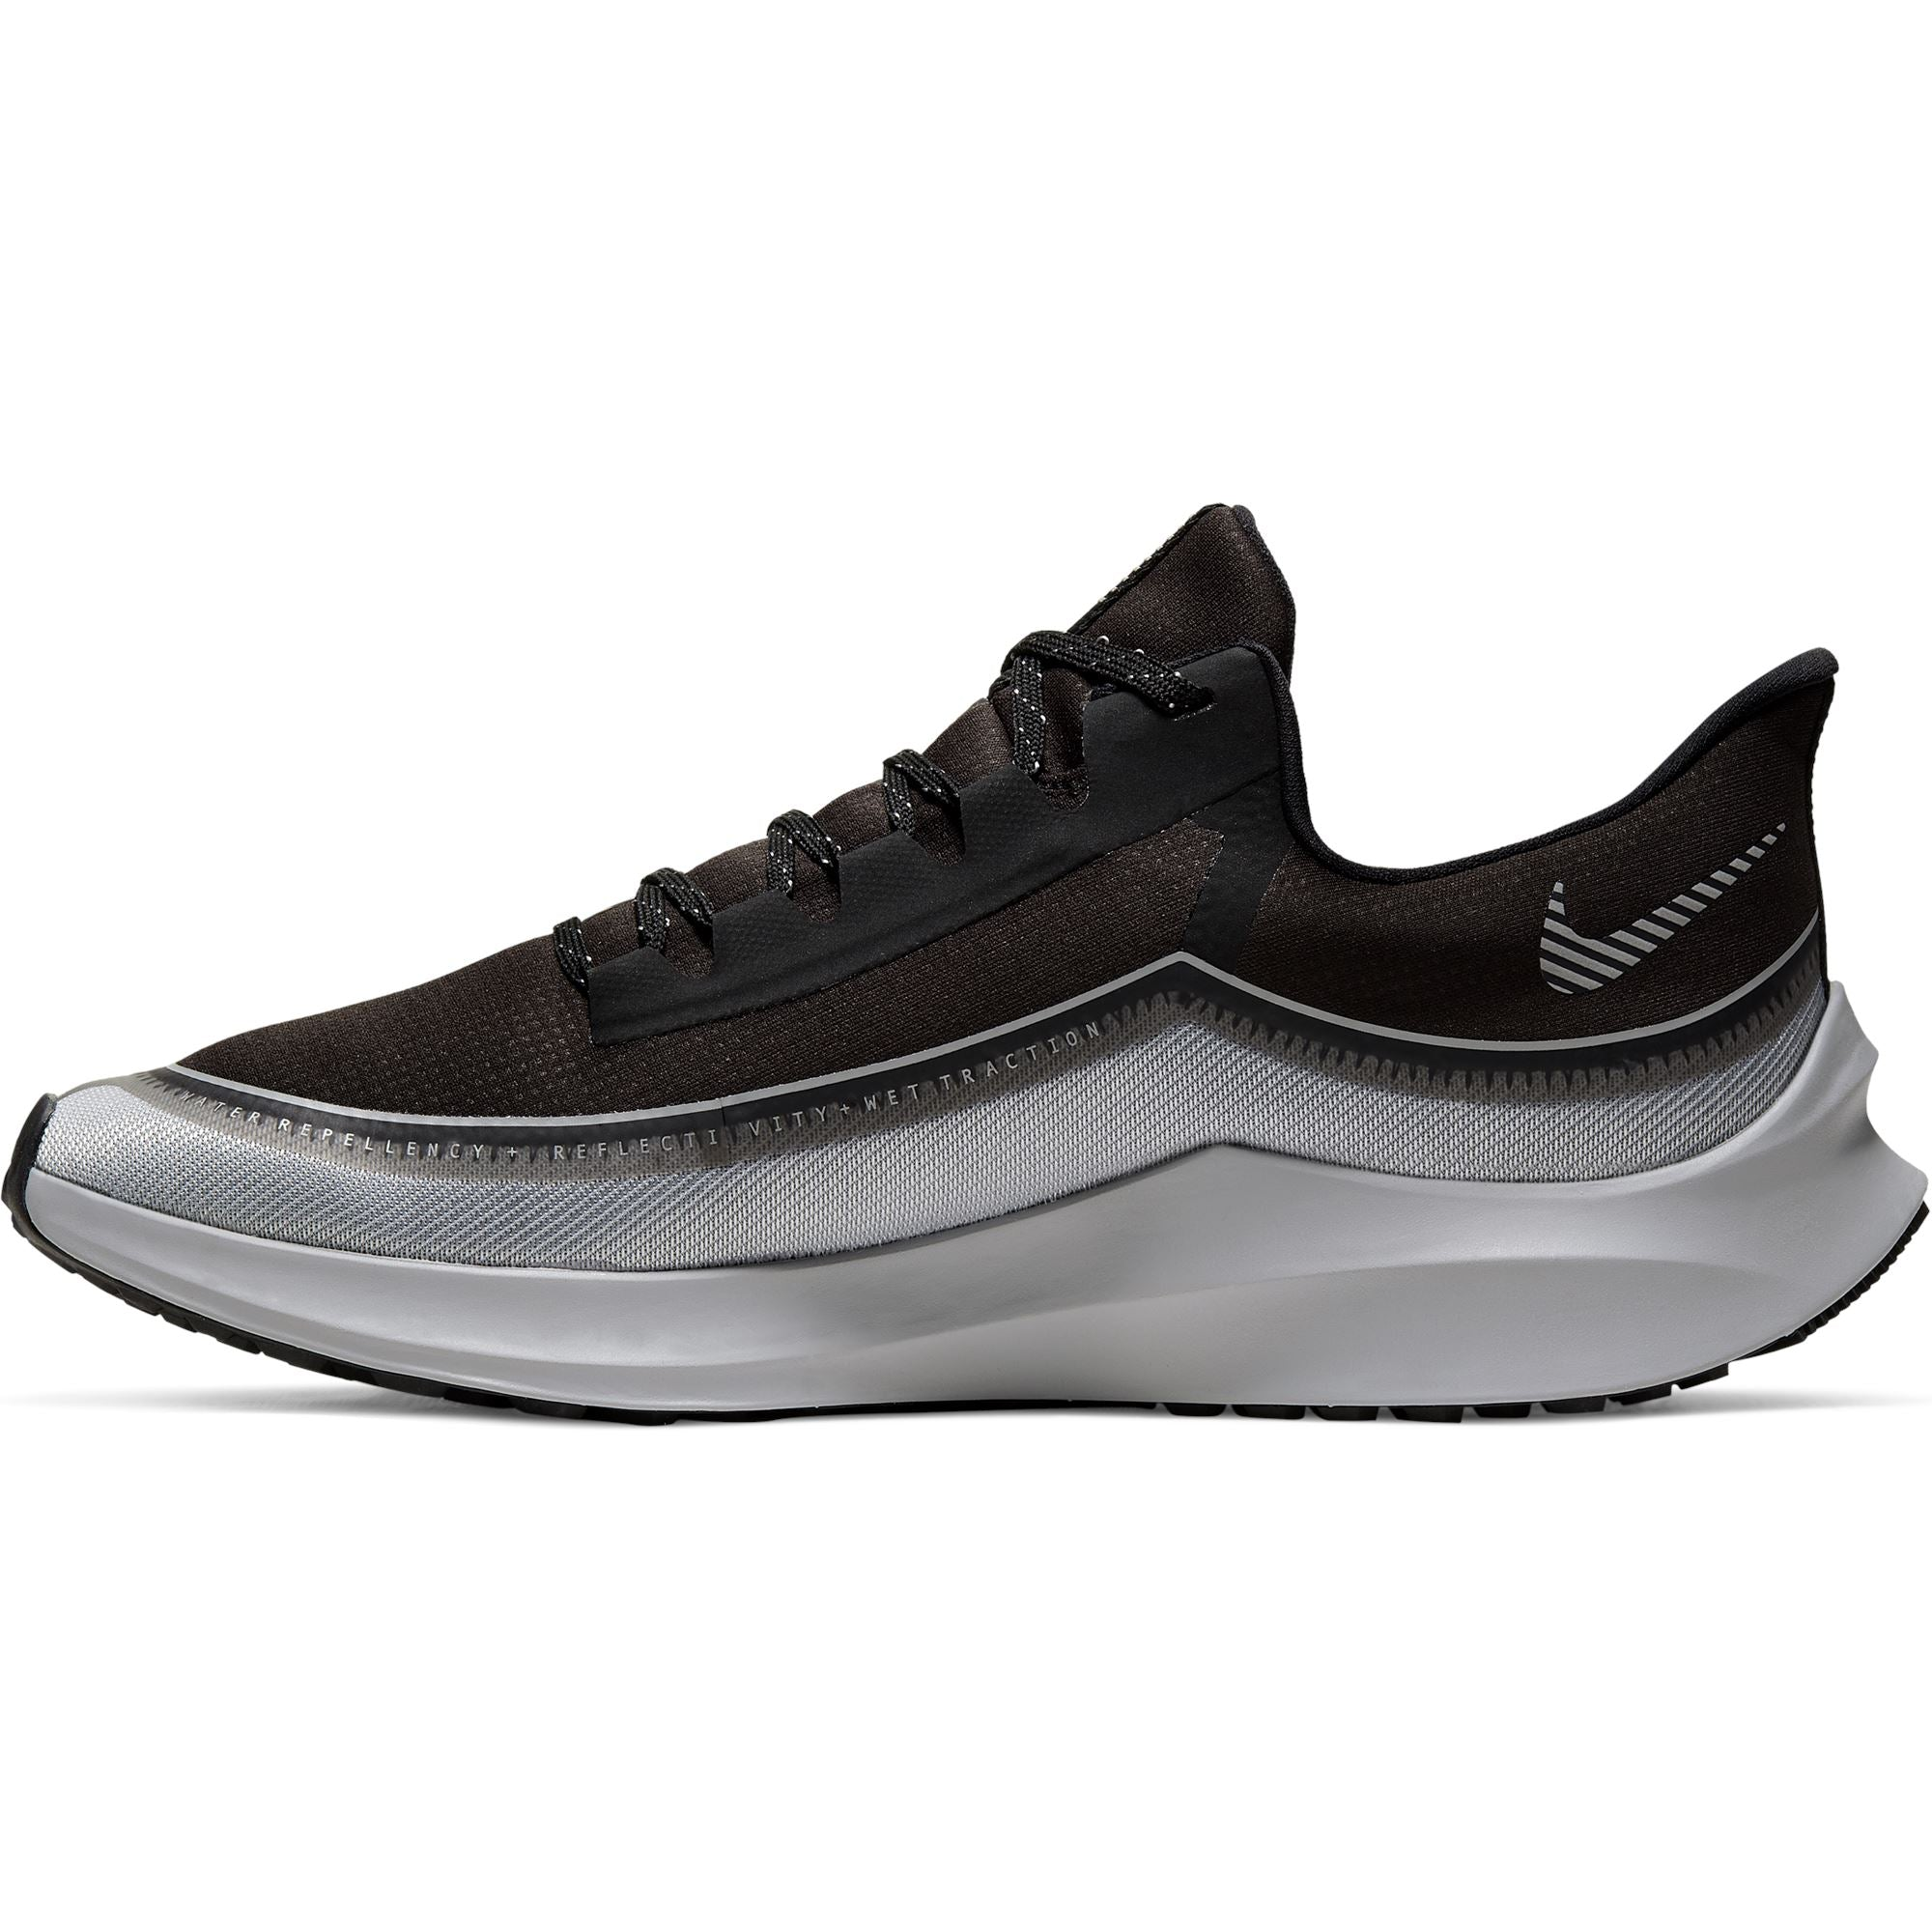 Nike Mens Zoom Winflo 6 Shield Sneaker - Black/Reflect Silver-Wolf Grey SP-Footwear-Mens Nike